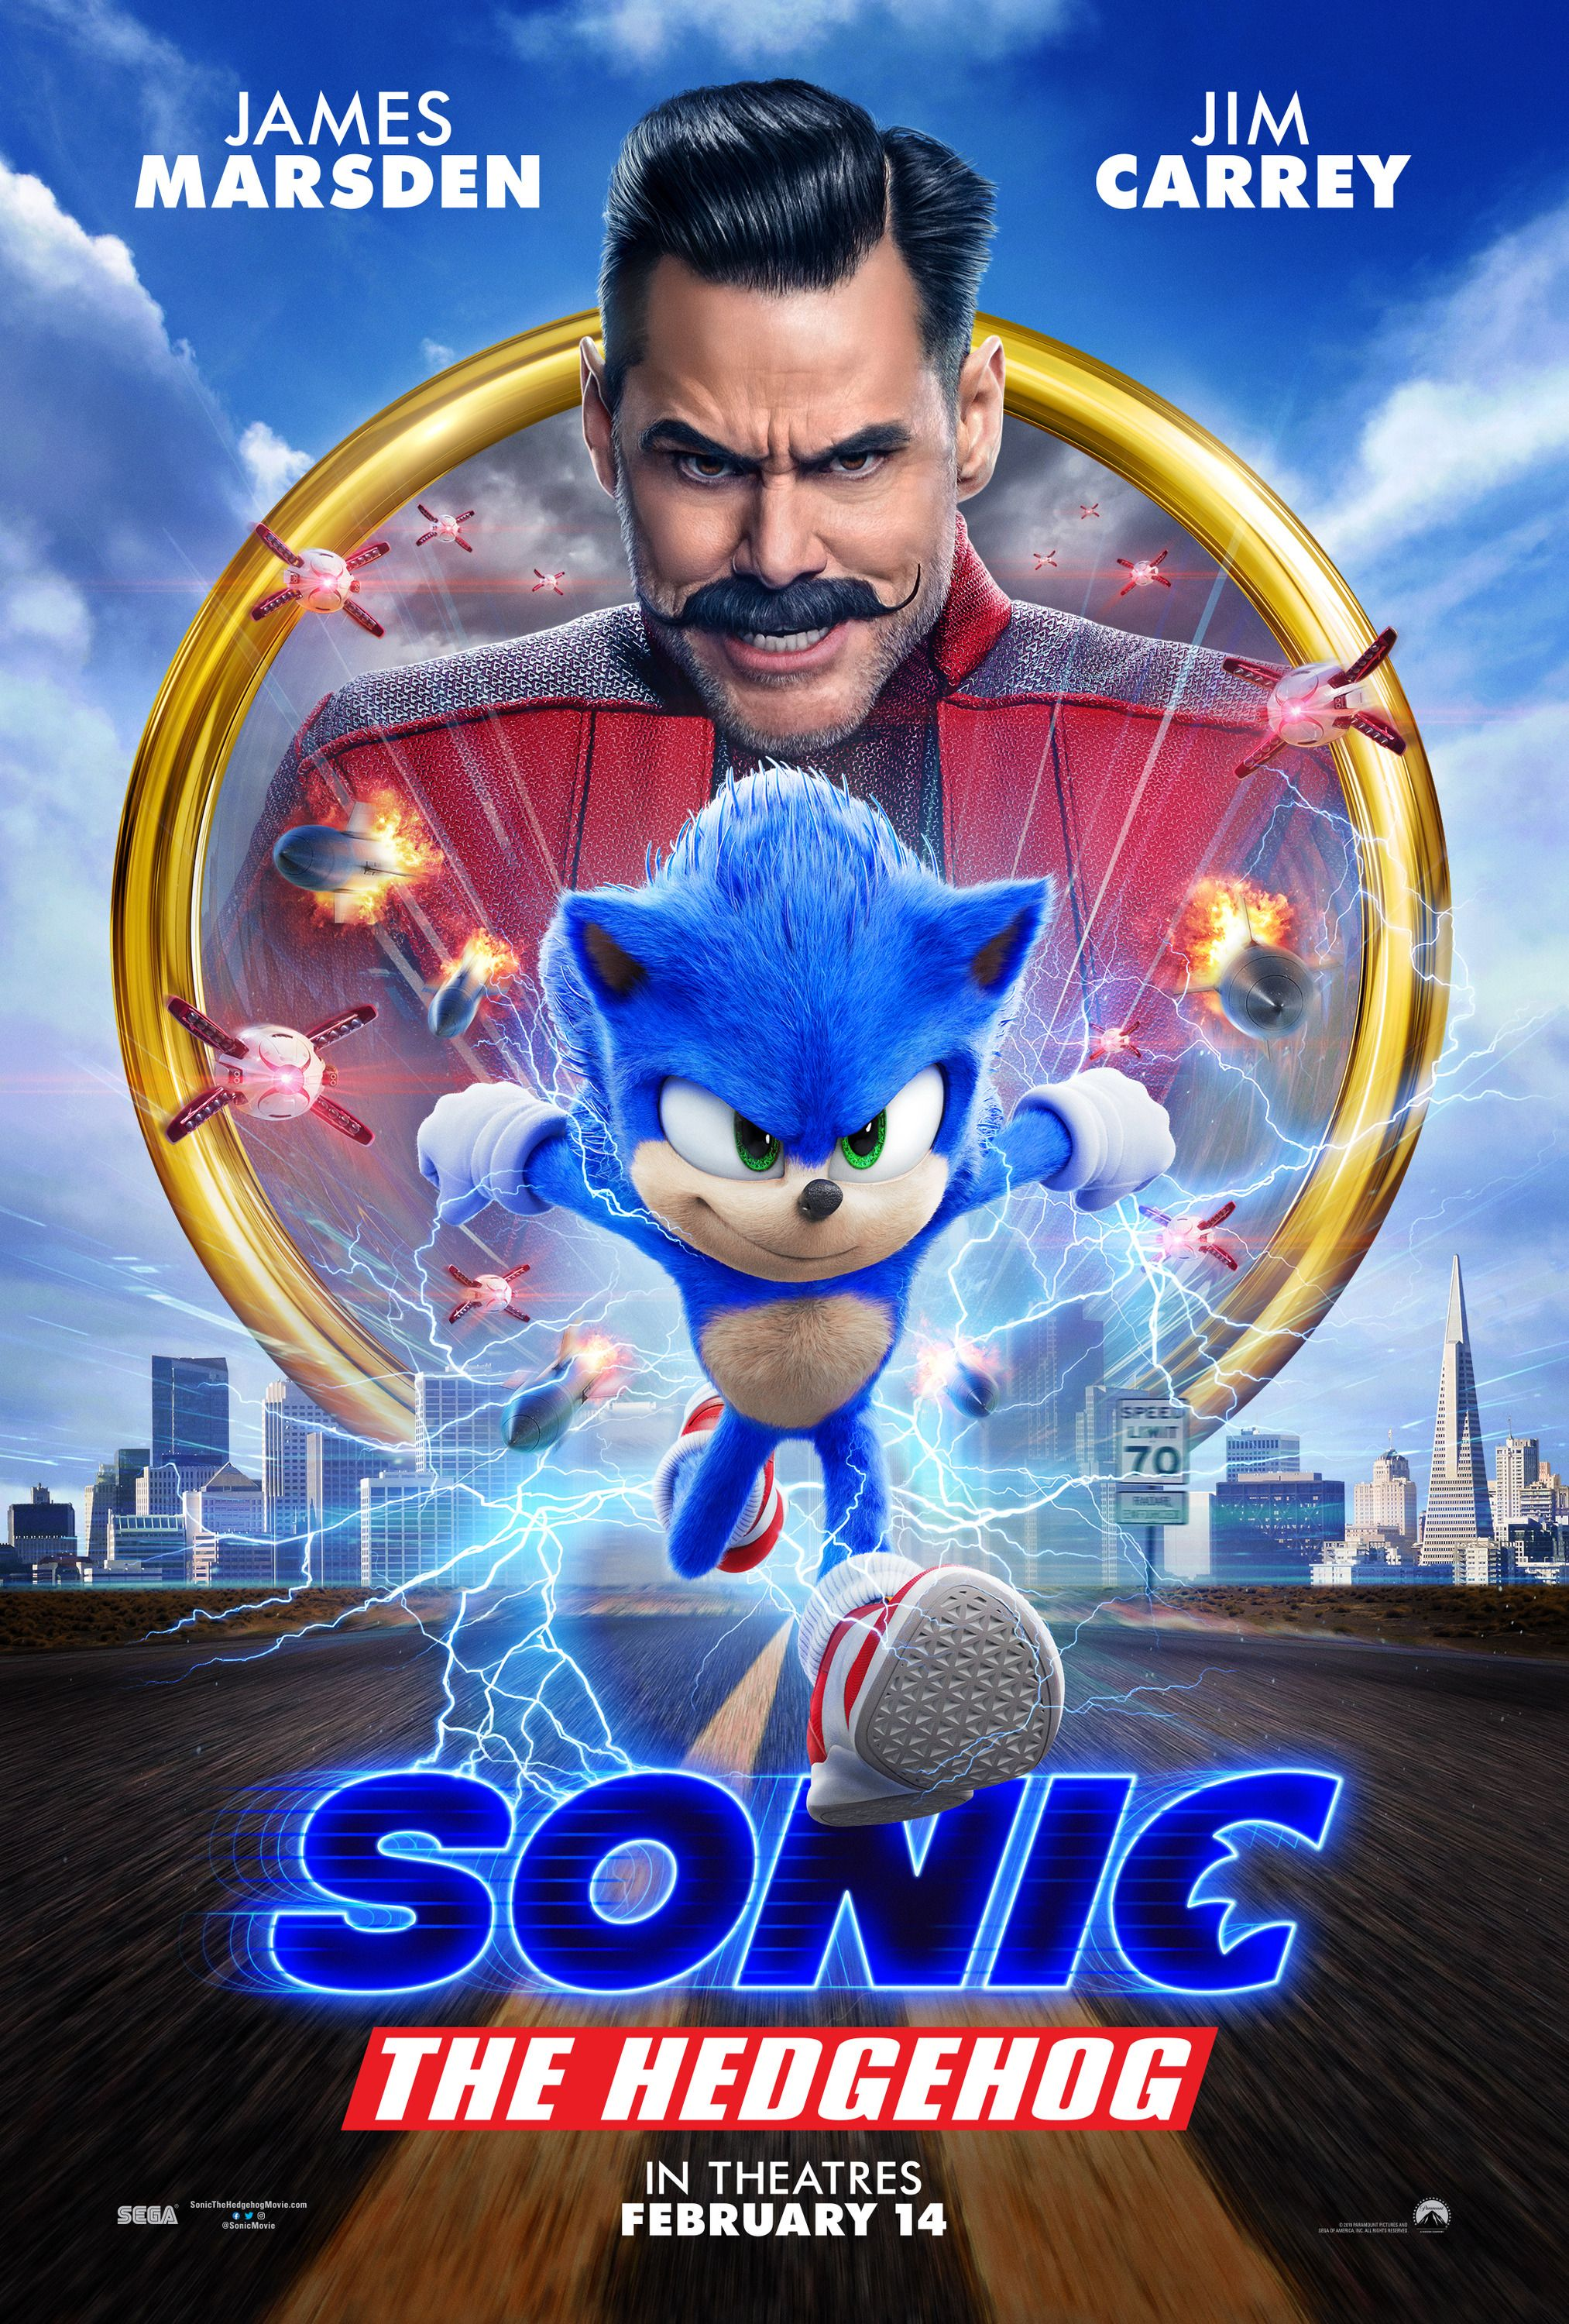 Sonic the Hedgehog | Pelicula de sonic, Sonic, Sonic the hedgehog